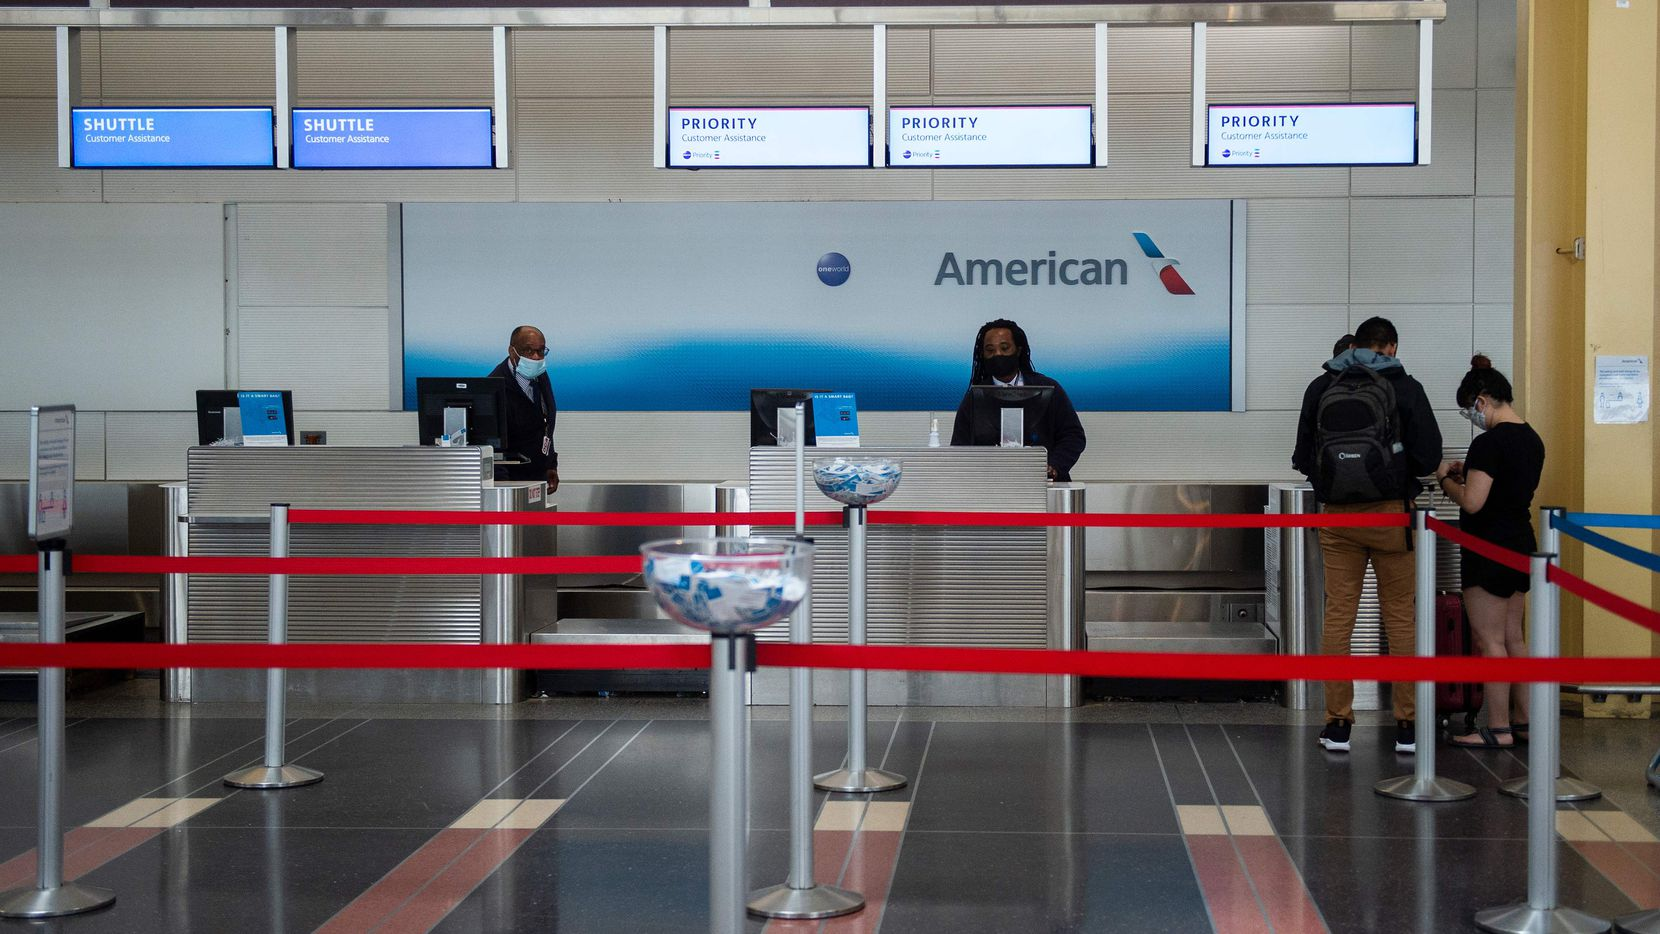 American Airlines employees check in two passengers at a mostly empty check-in counter in Ronald Reagan Washington National Airport in Arlington, Virginia, on May 12, 2020. - The airline industry has been hit hard by the COVID-19 pandemic, with the number of people flying having decreased by more than 90 percent since the beginning of March. (Photo by ANDREW CABALLERO-REYNOLDS / AFP) (Photo by ANDREW CABALLERO-REYNOLDS/AFP via Getty Images)